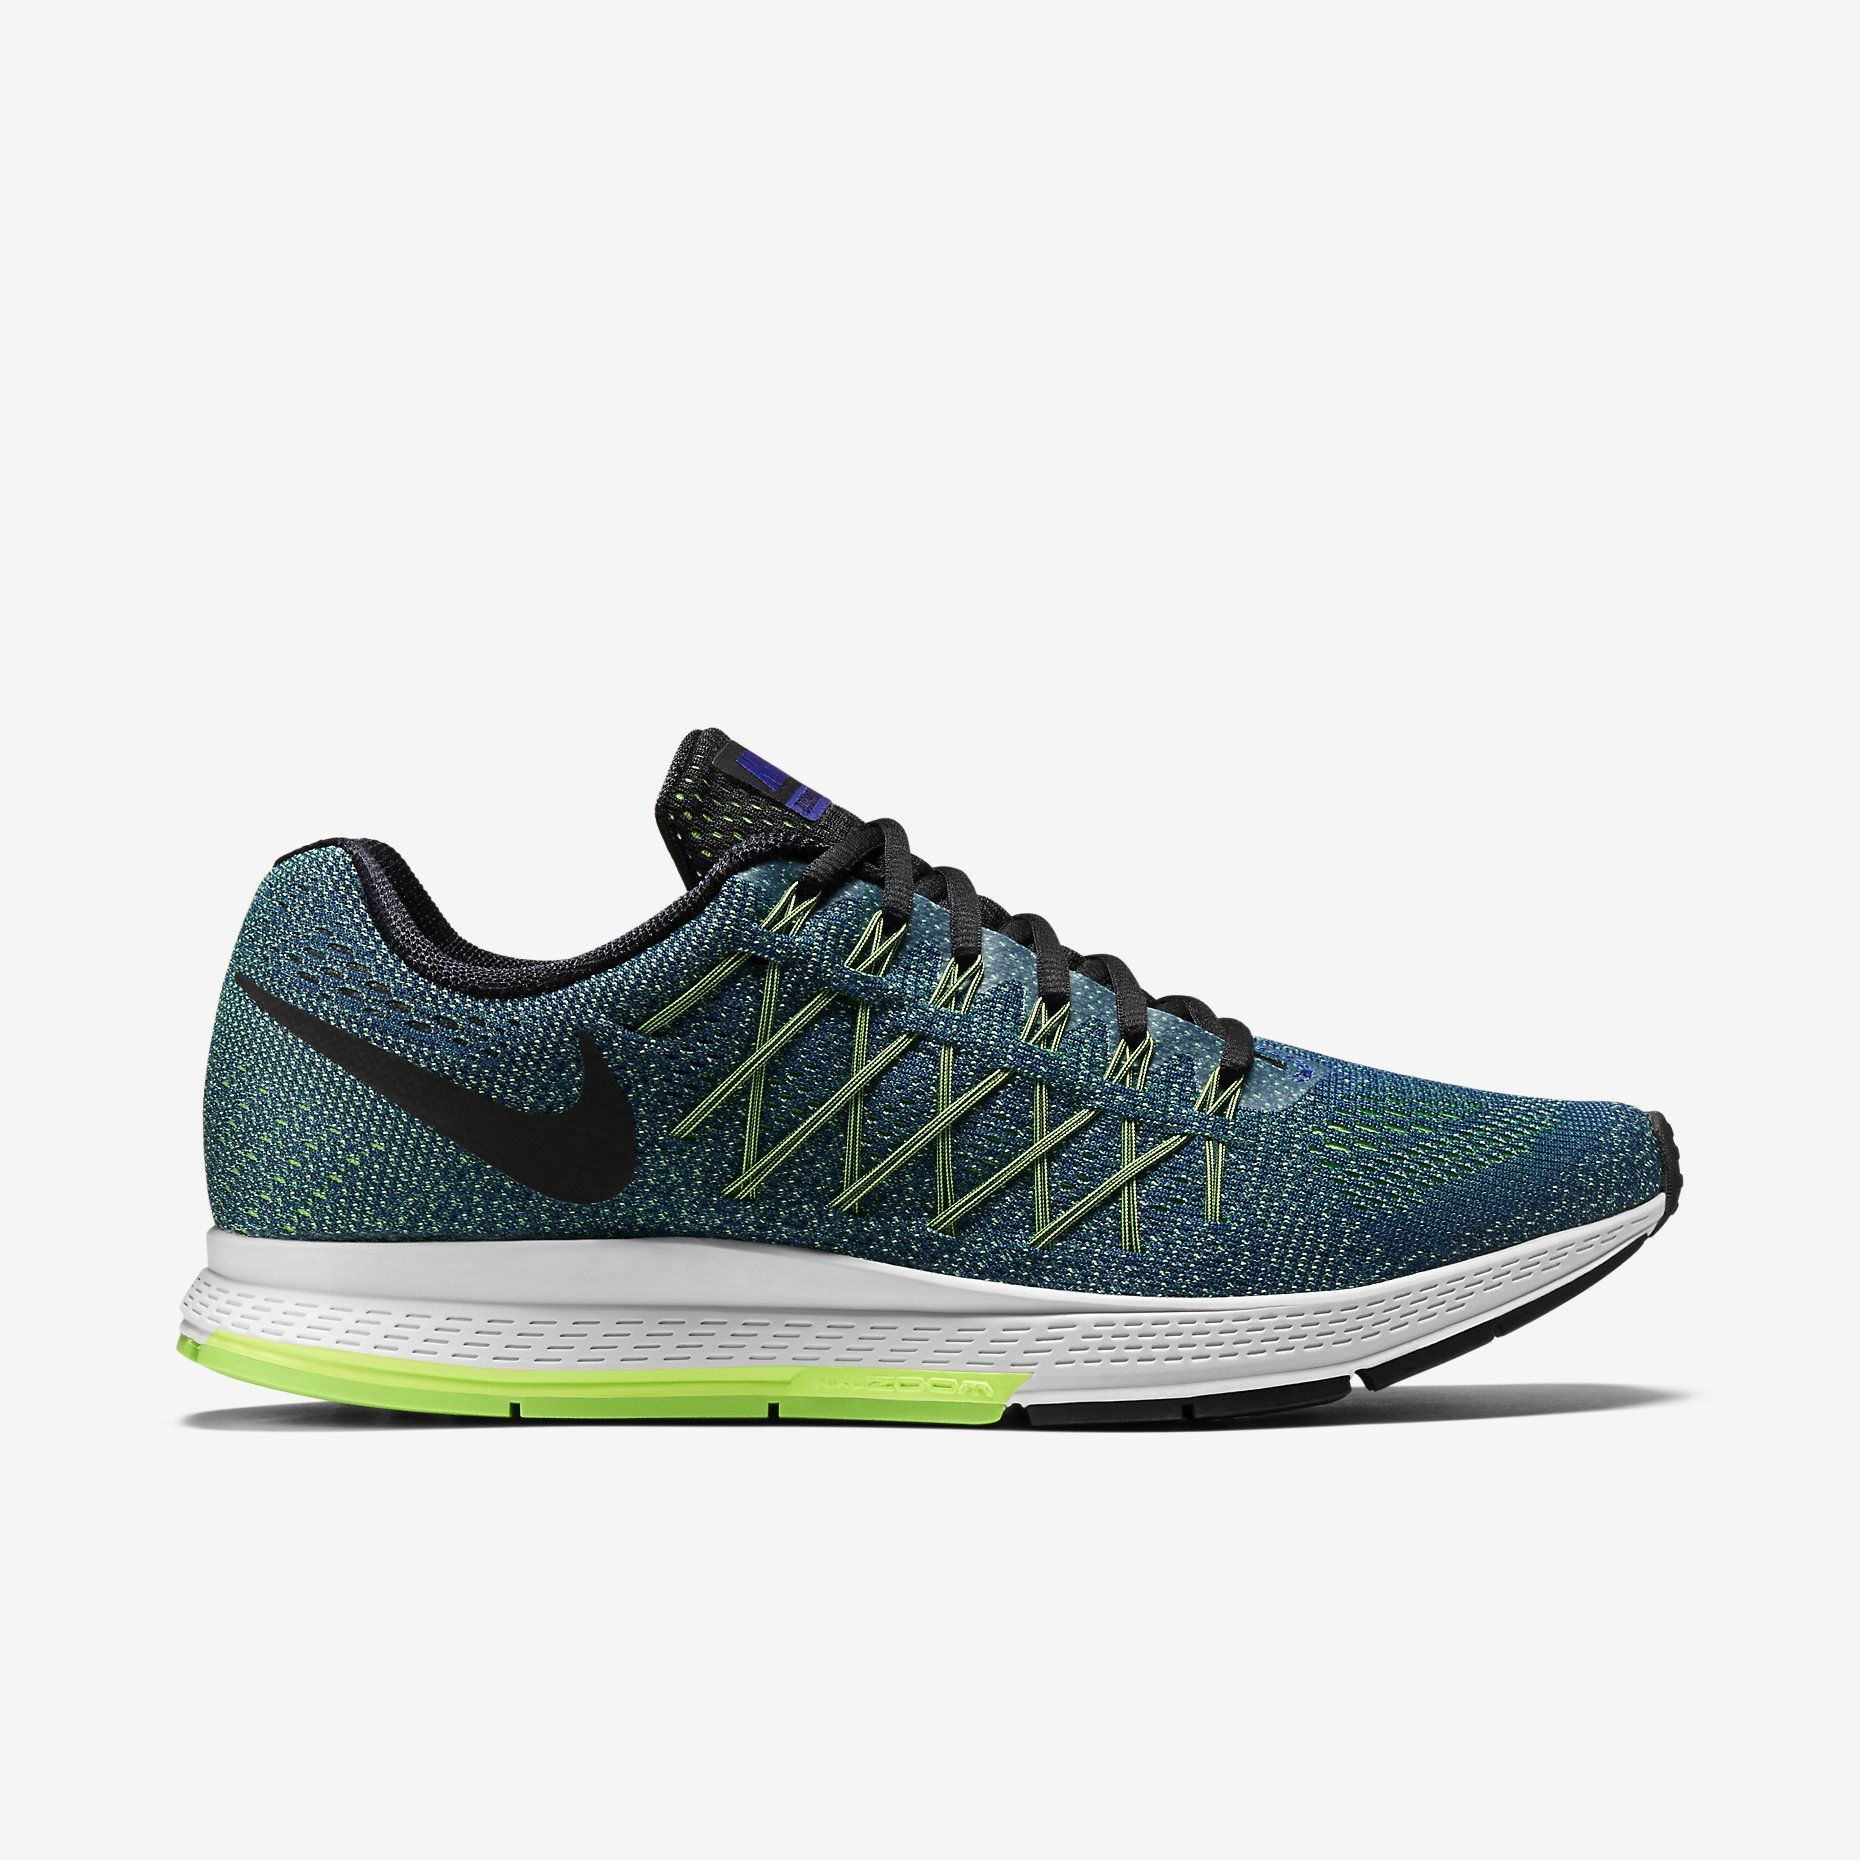 Contar Corte prueba  Look what I found at Nike online. | Zapatos